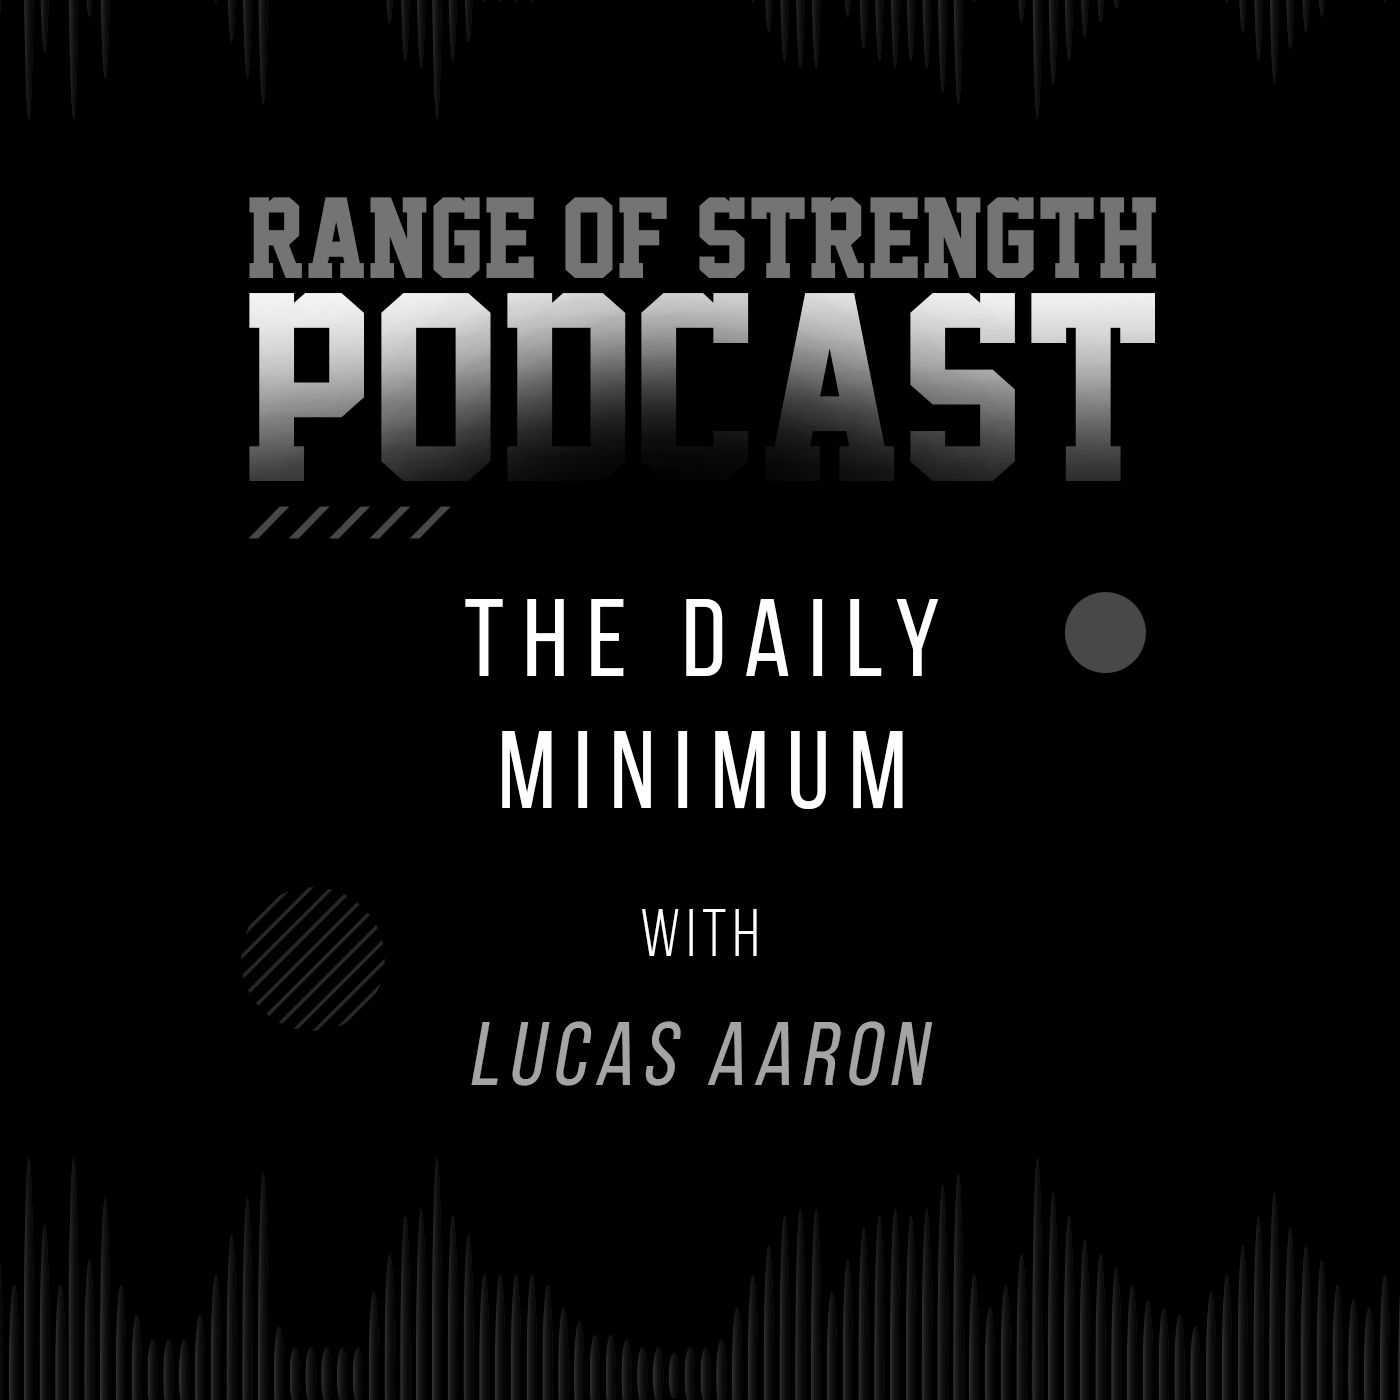 RANGE OF STRENGTH Podcast Episode 22: The Daily Minimum with Lucas Aaron